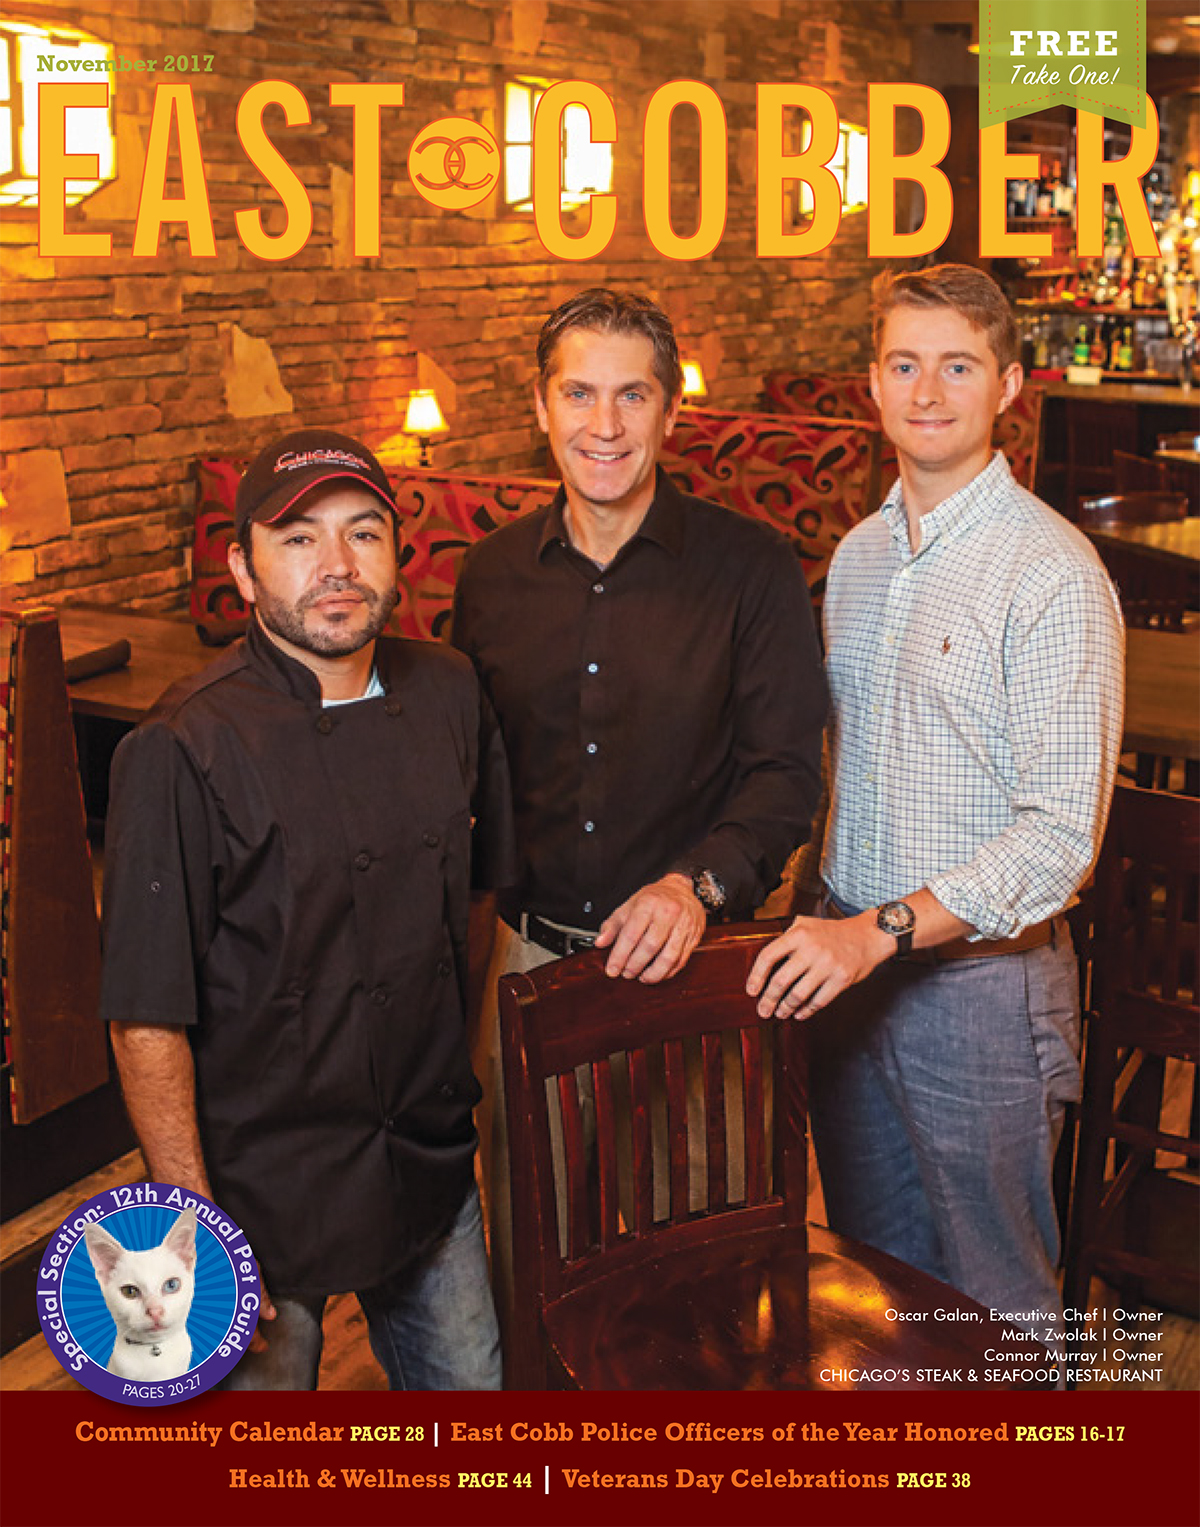 Look Who's on the November Cover: Chicago's Steak & Seafood's Owners and Executive Chef